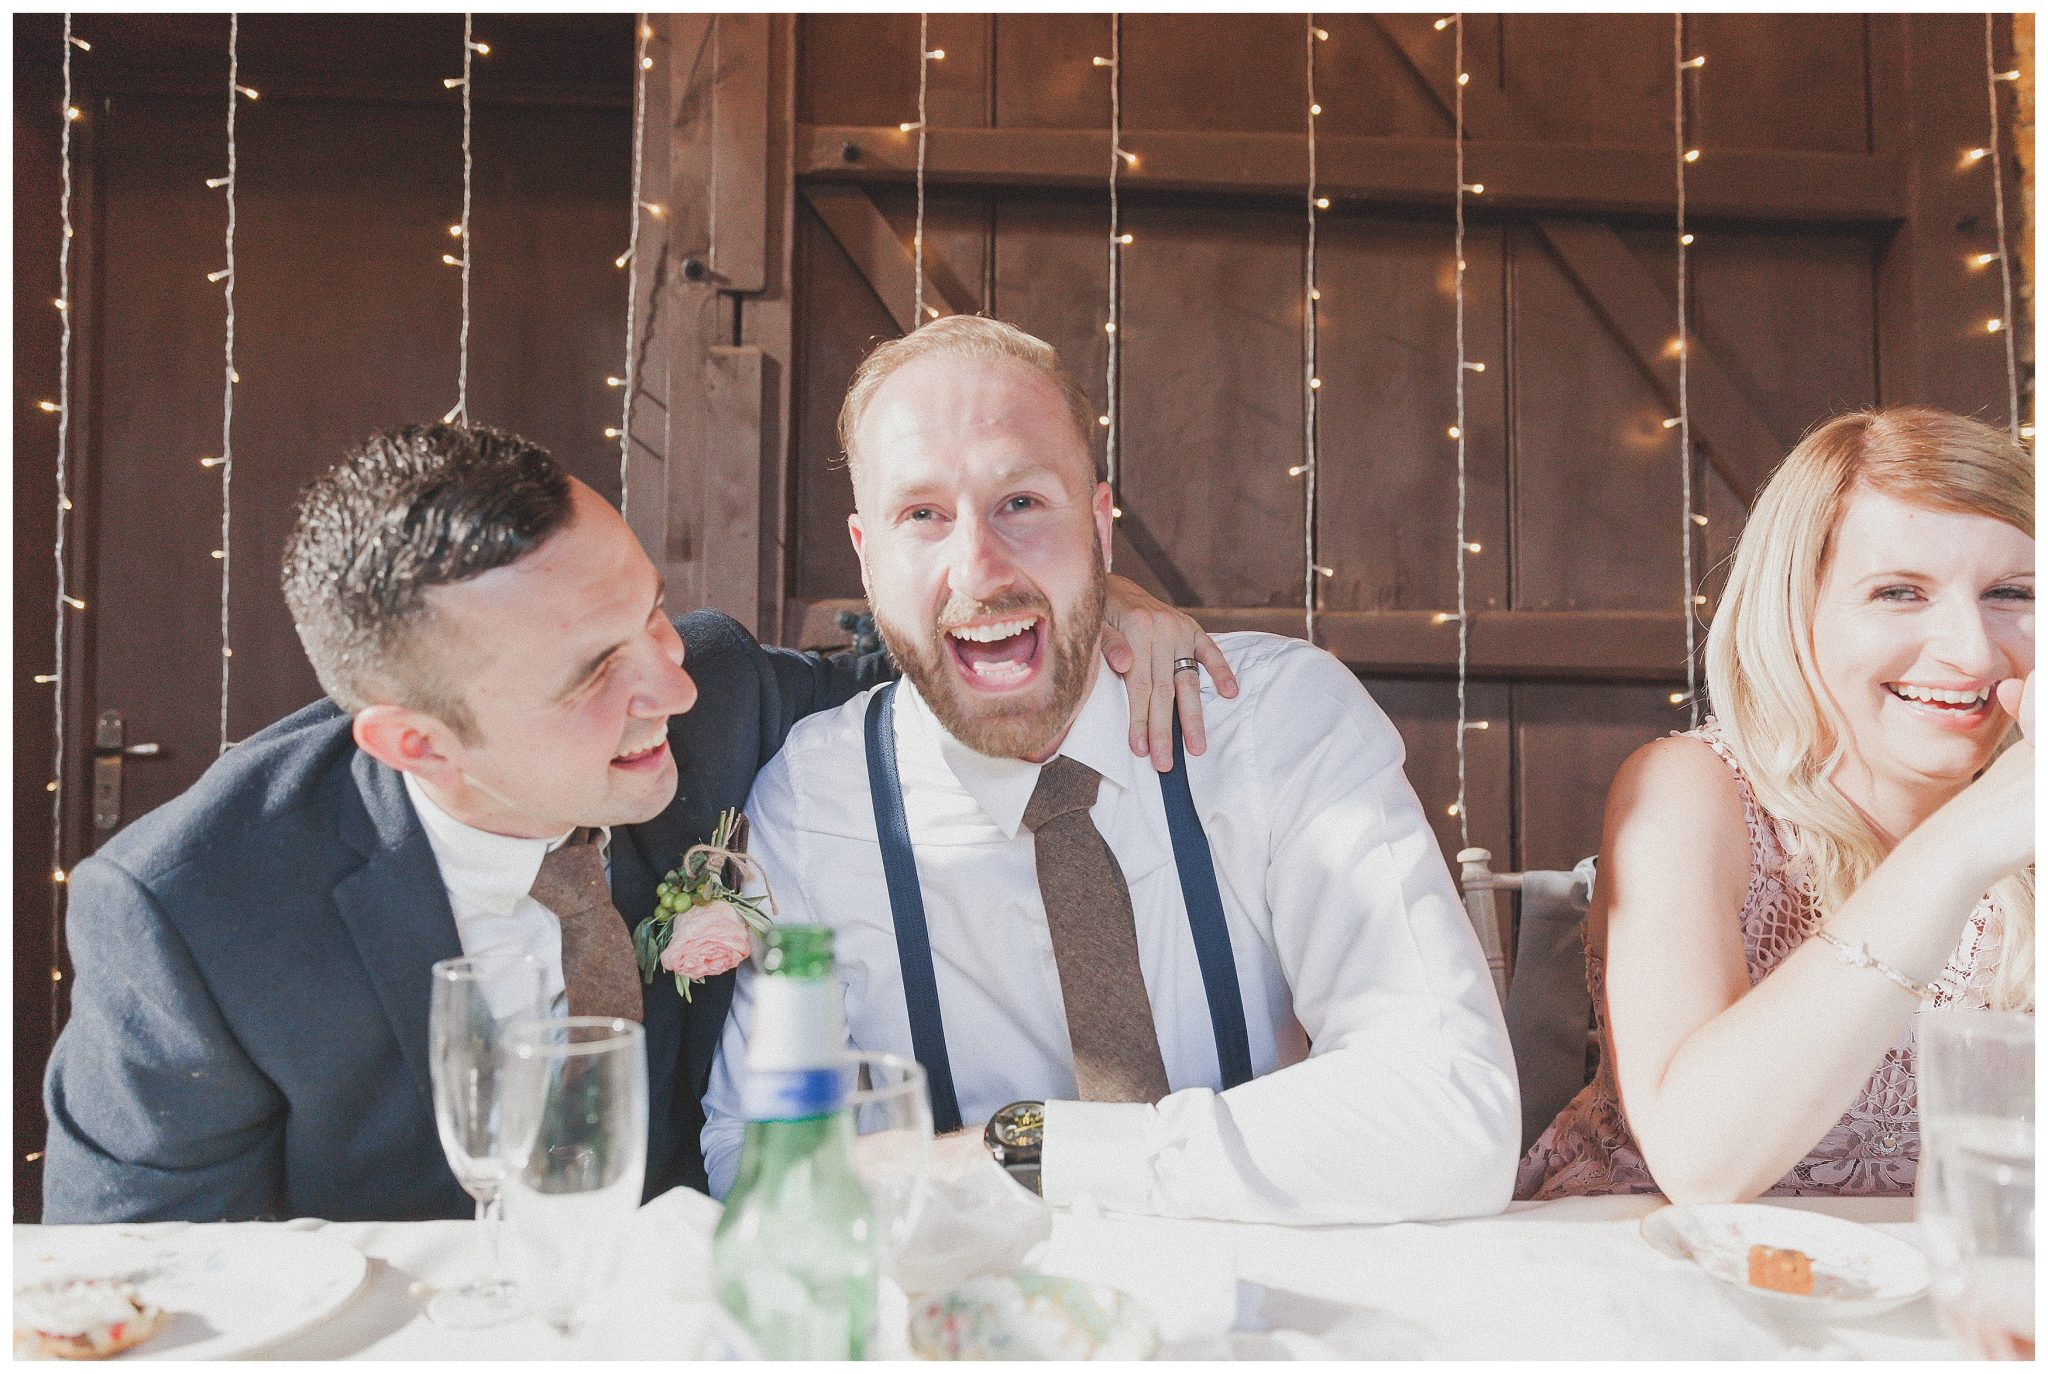 Groom and best man laughing together